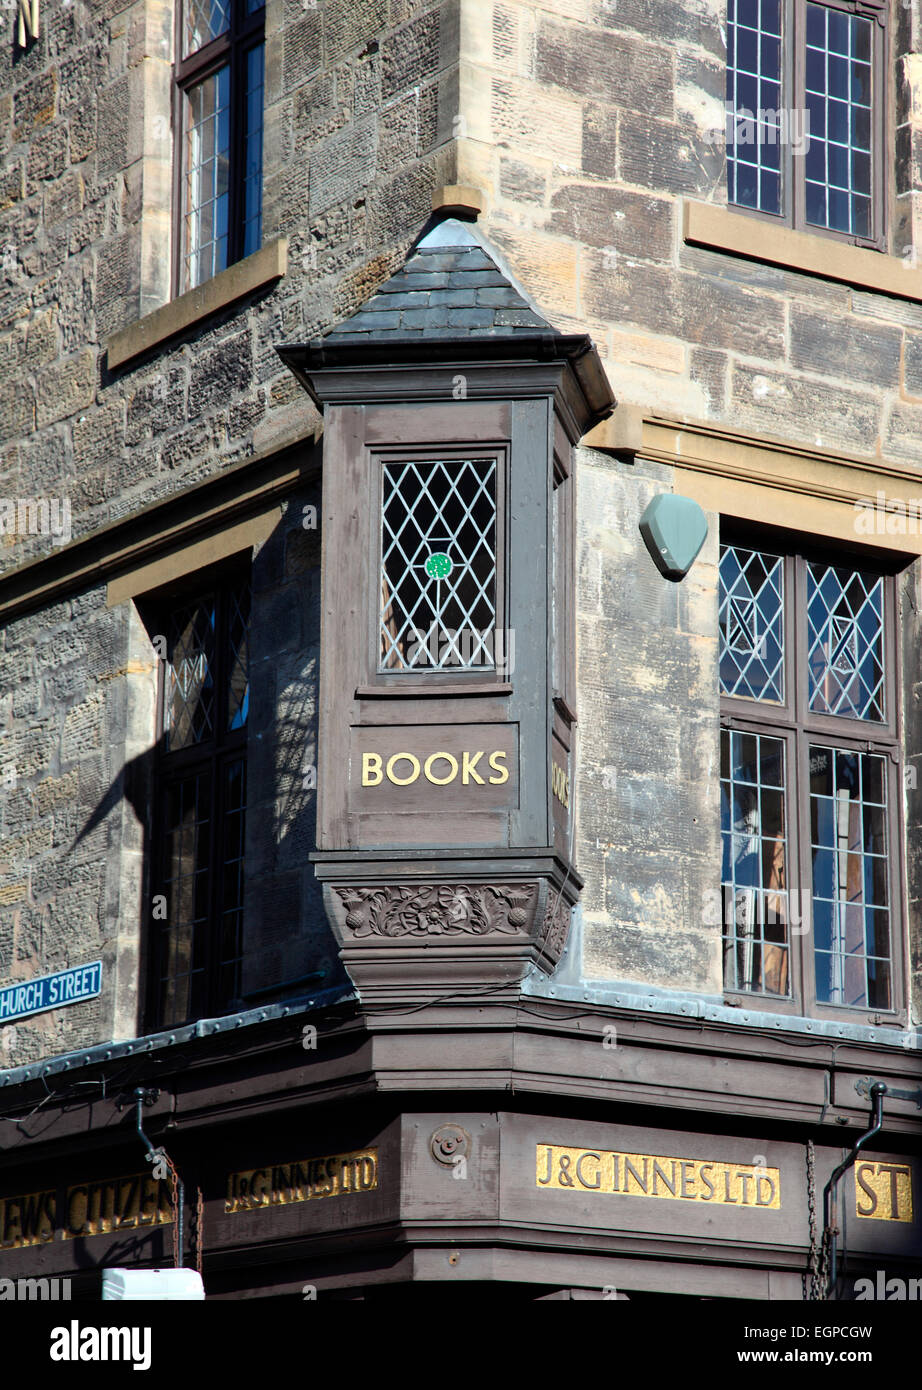 J & G Innes independent booksellers in St Andrews. - Stock Image